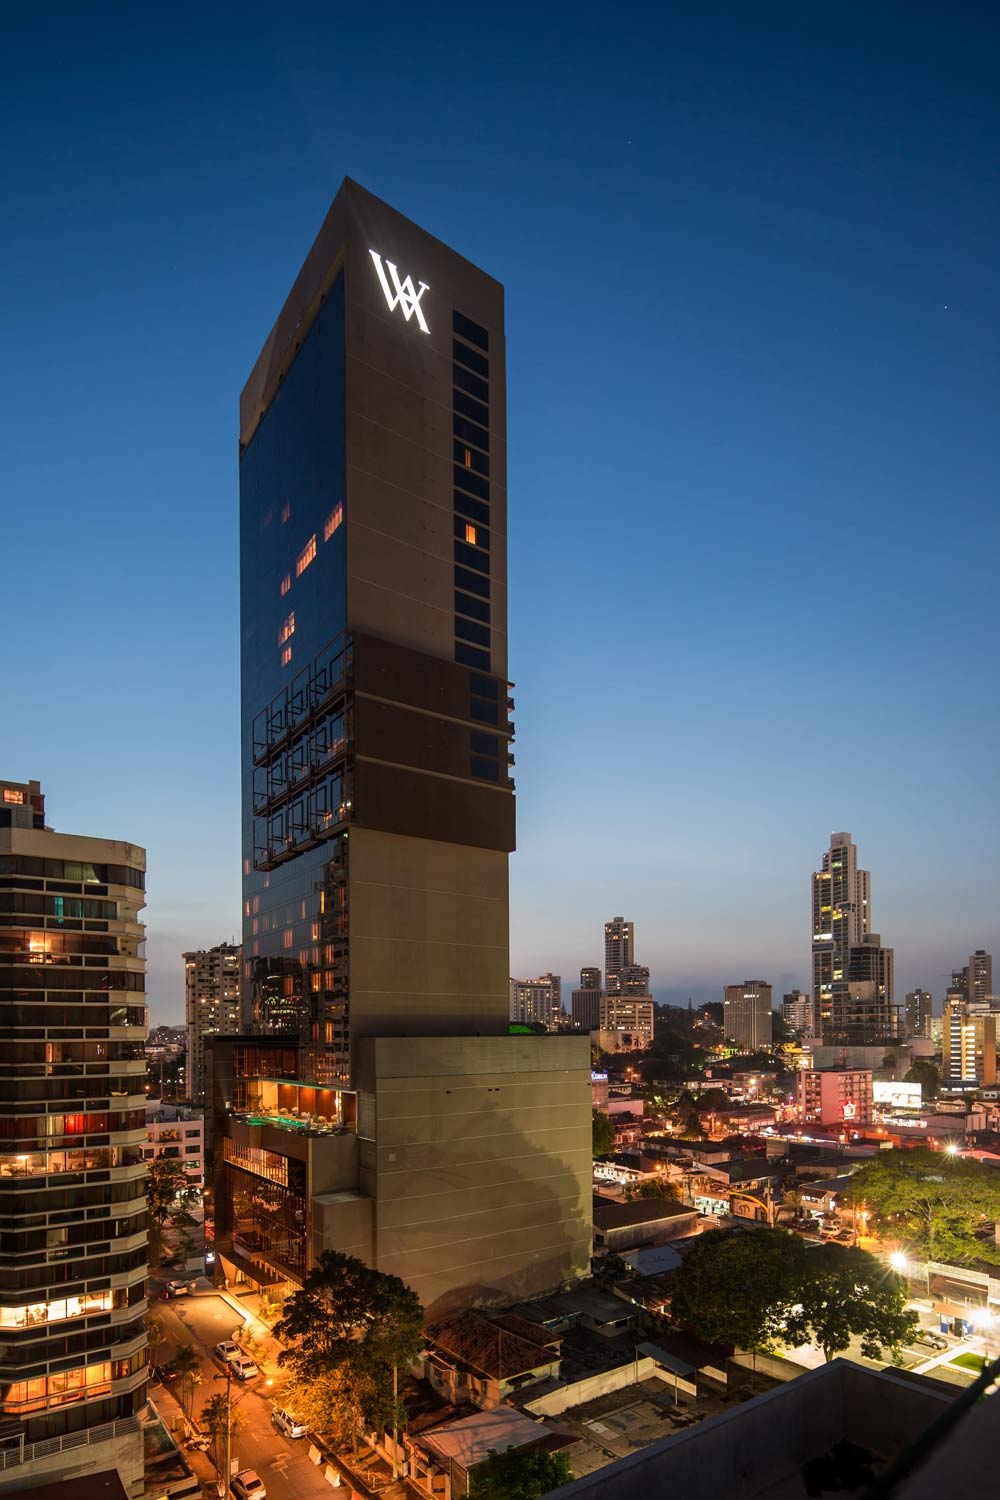 Waldorf Astoria PanamaPanama City